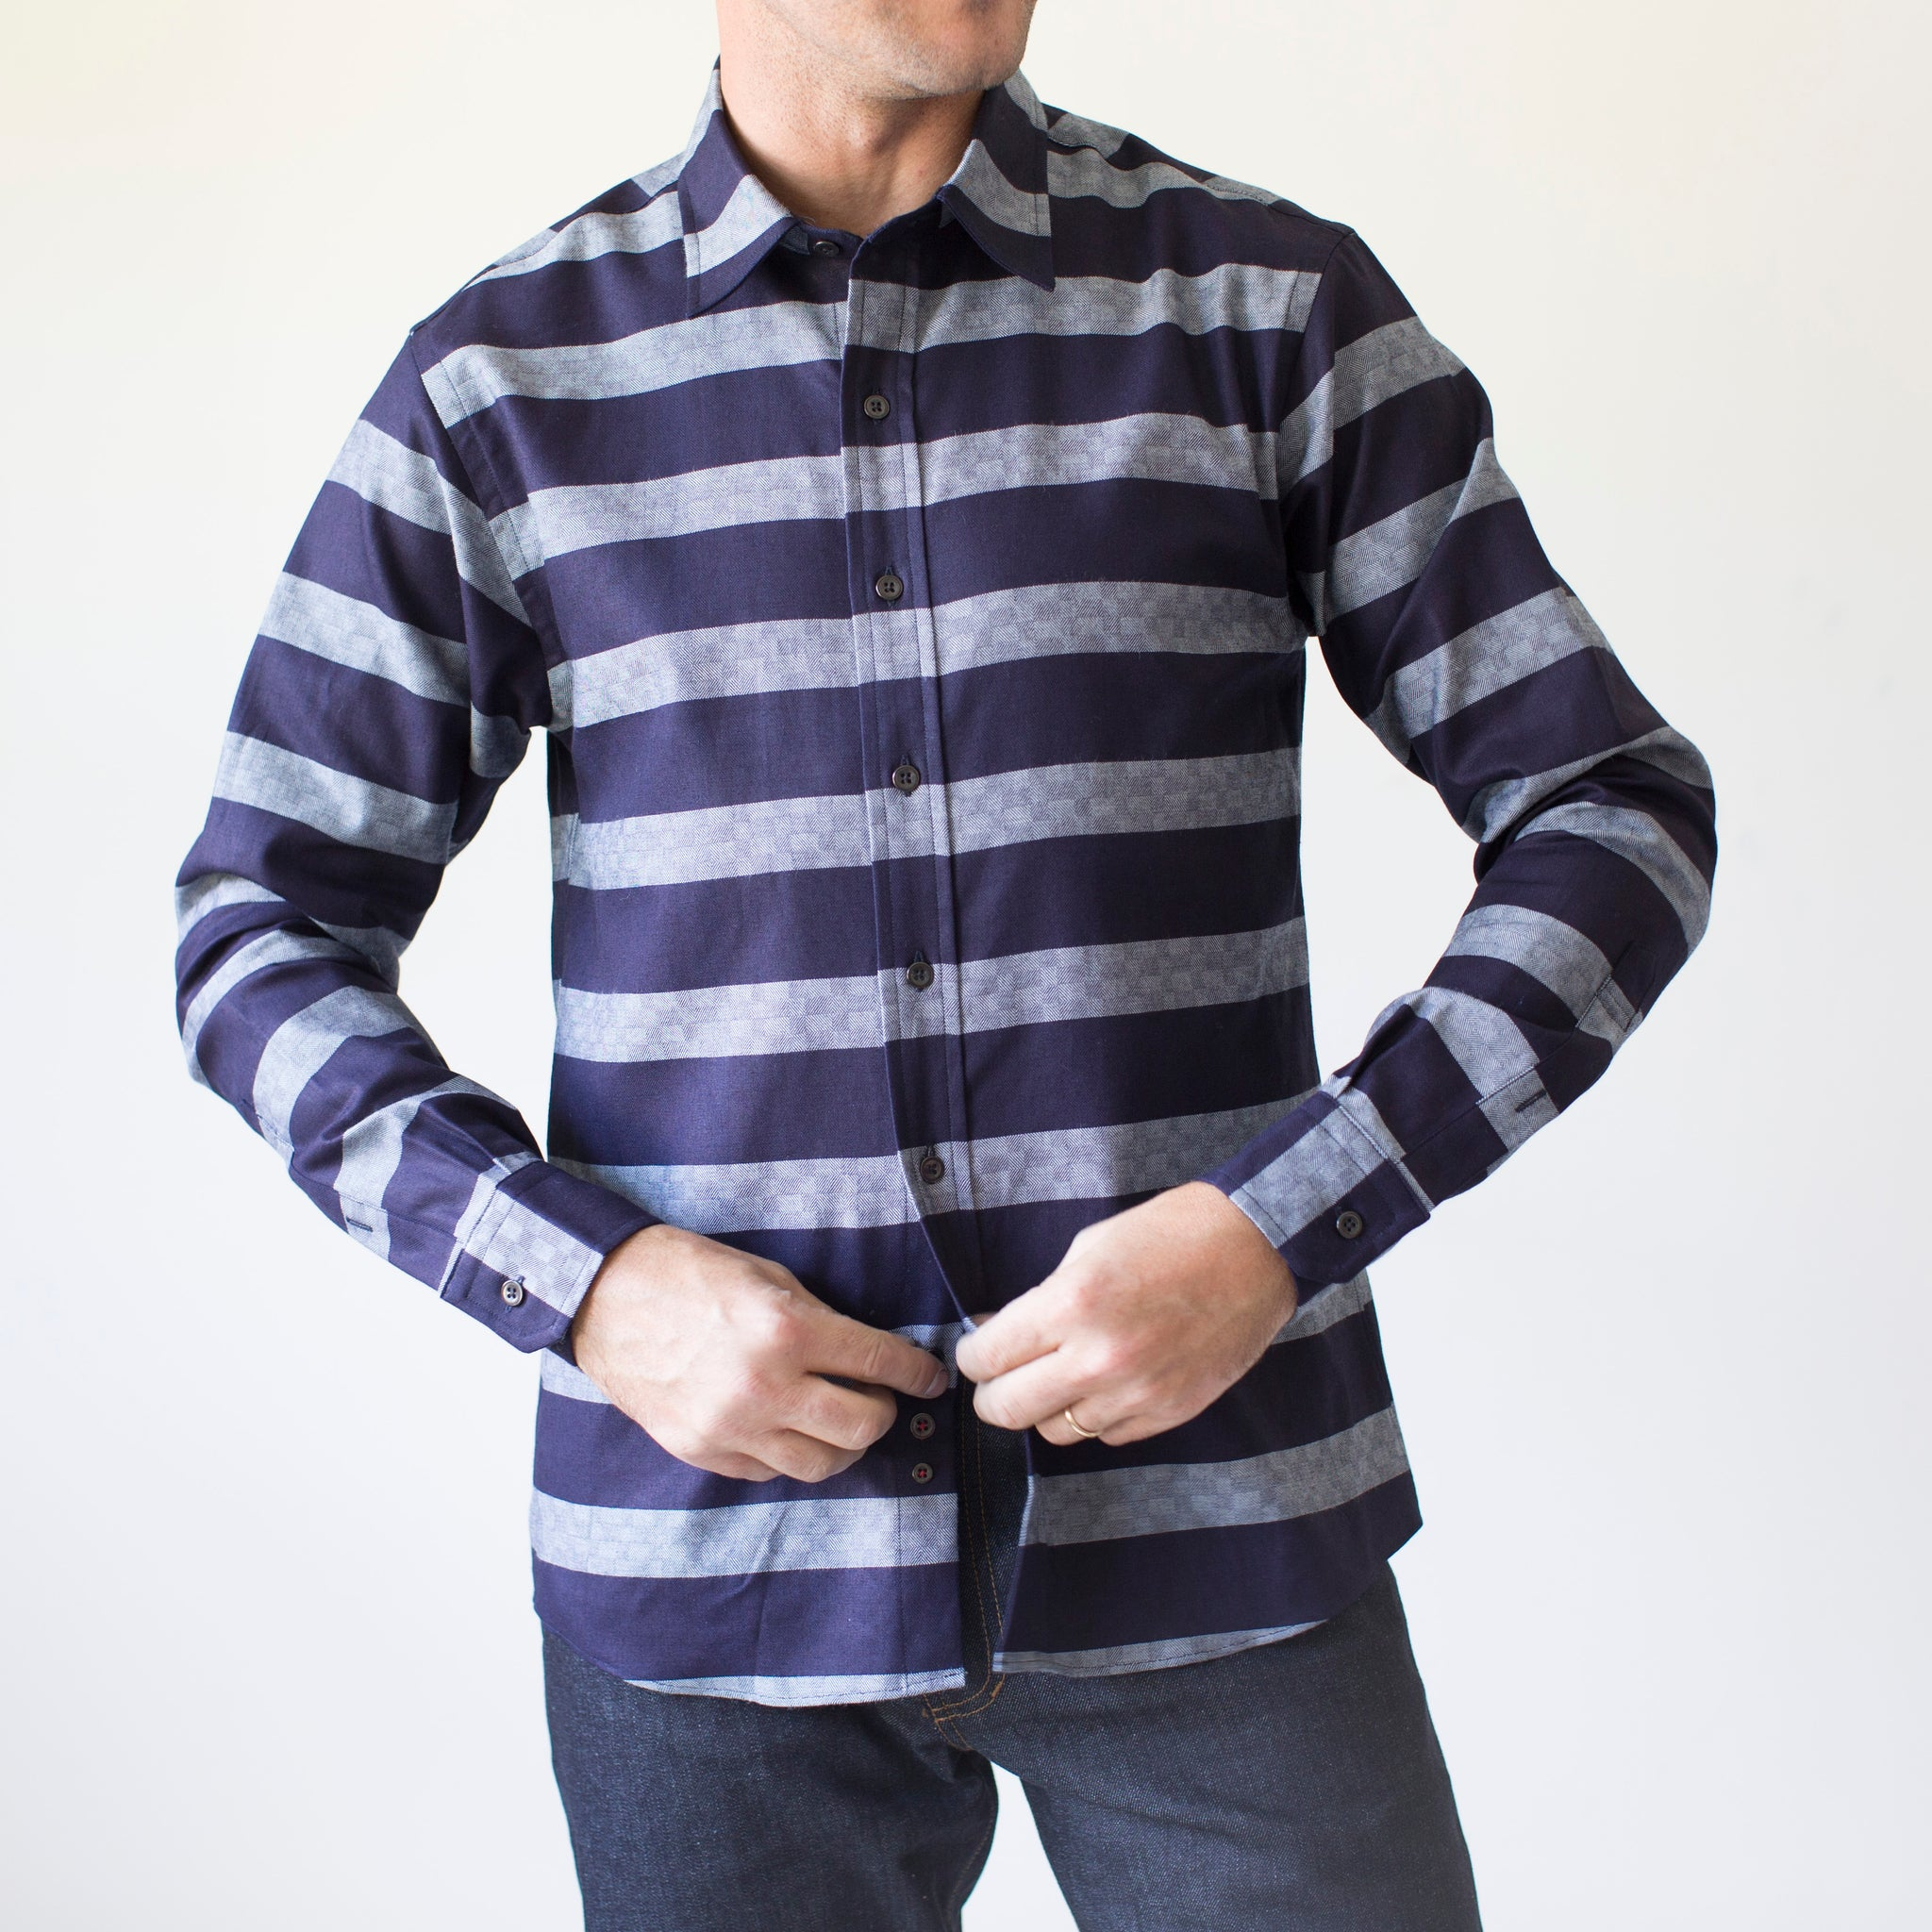 angle: bold indigo stripe  A model wears Raleigh Denim Workshop Classic Button-up men's shirt in indigo and gray stripes, front